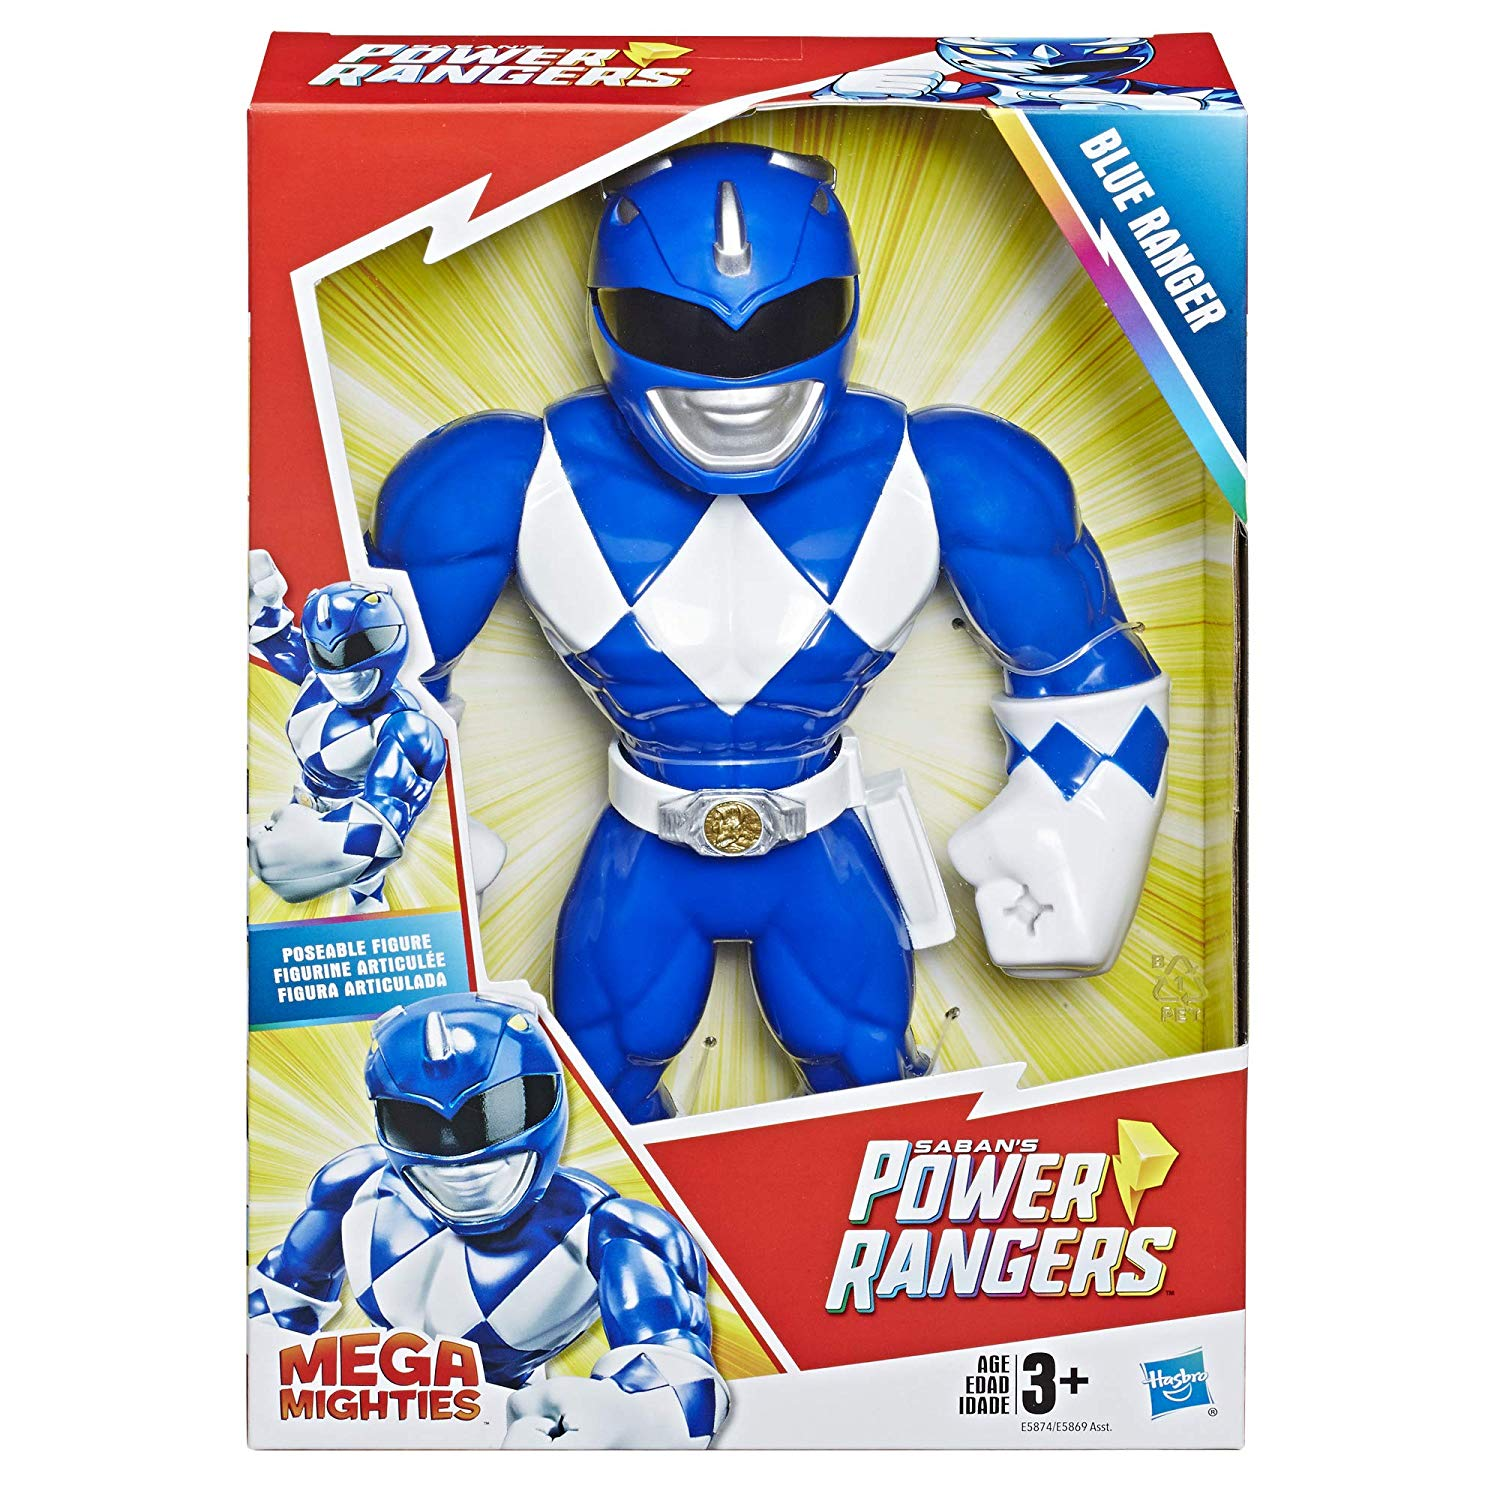 Boneco Articulada 25 Cm Power Rangers Mega Mighties  Blue Ranger E5874/E5869 - Hasbro